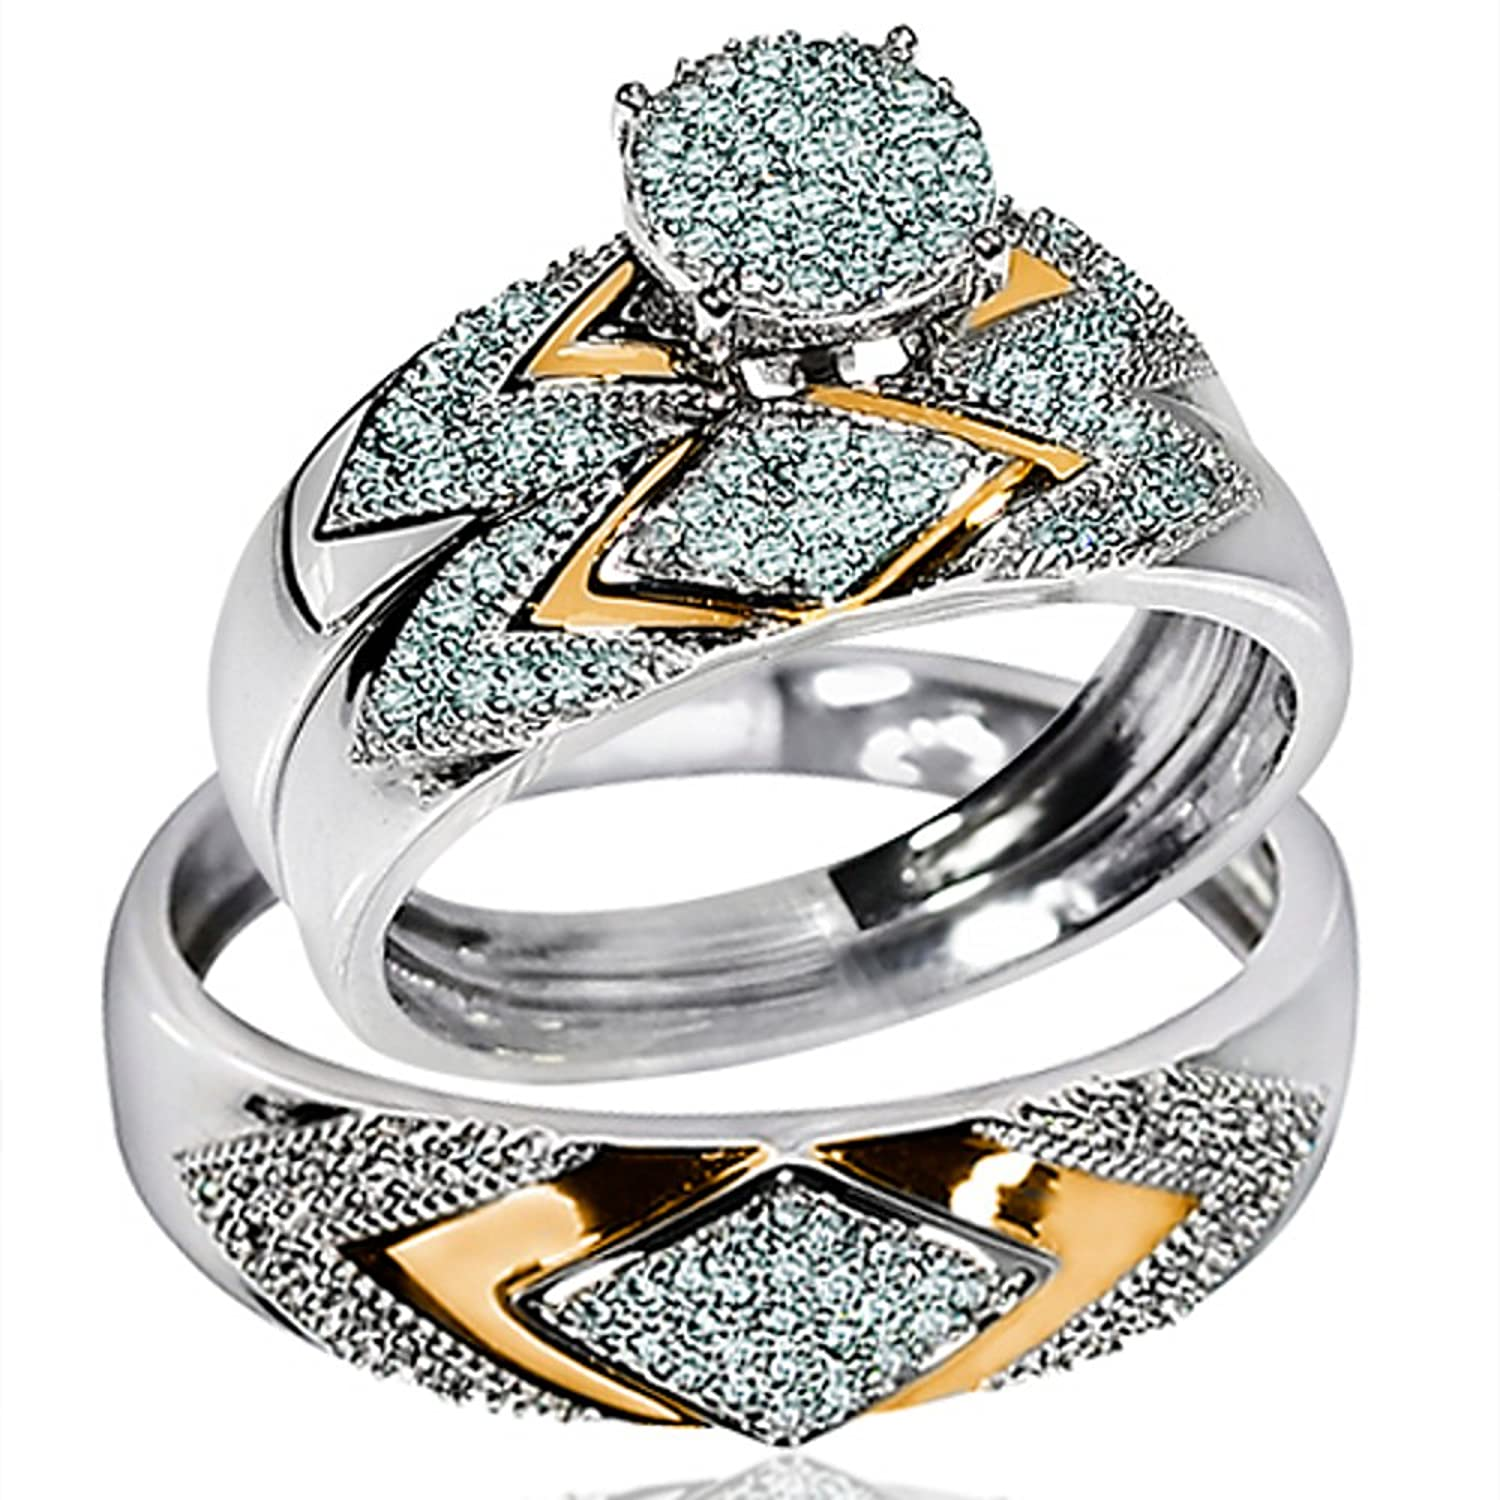 carat diamond yellow infinity new ring products round in rings design gold tantalizing cut engagement jewellery